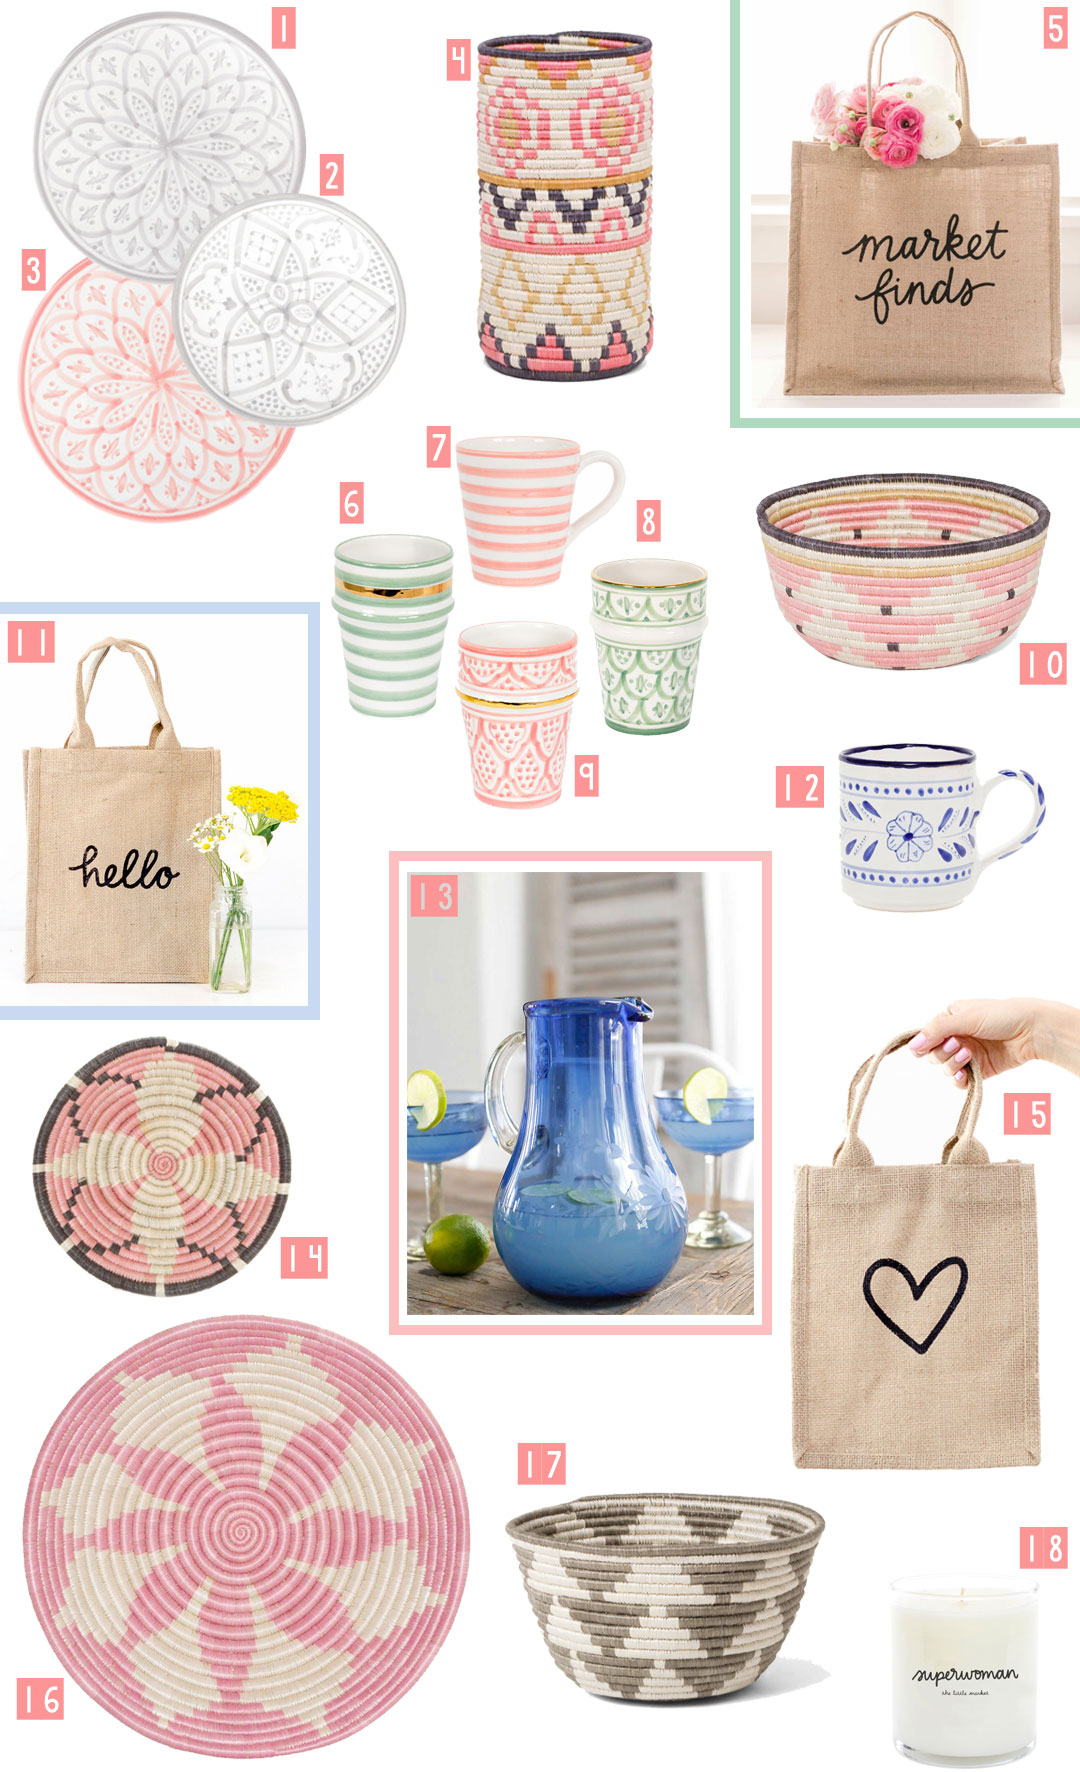 Home Wishlist from The Little Market